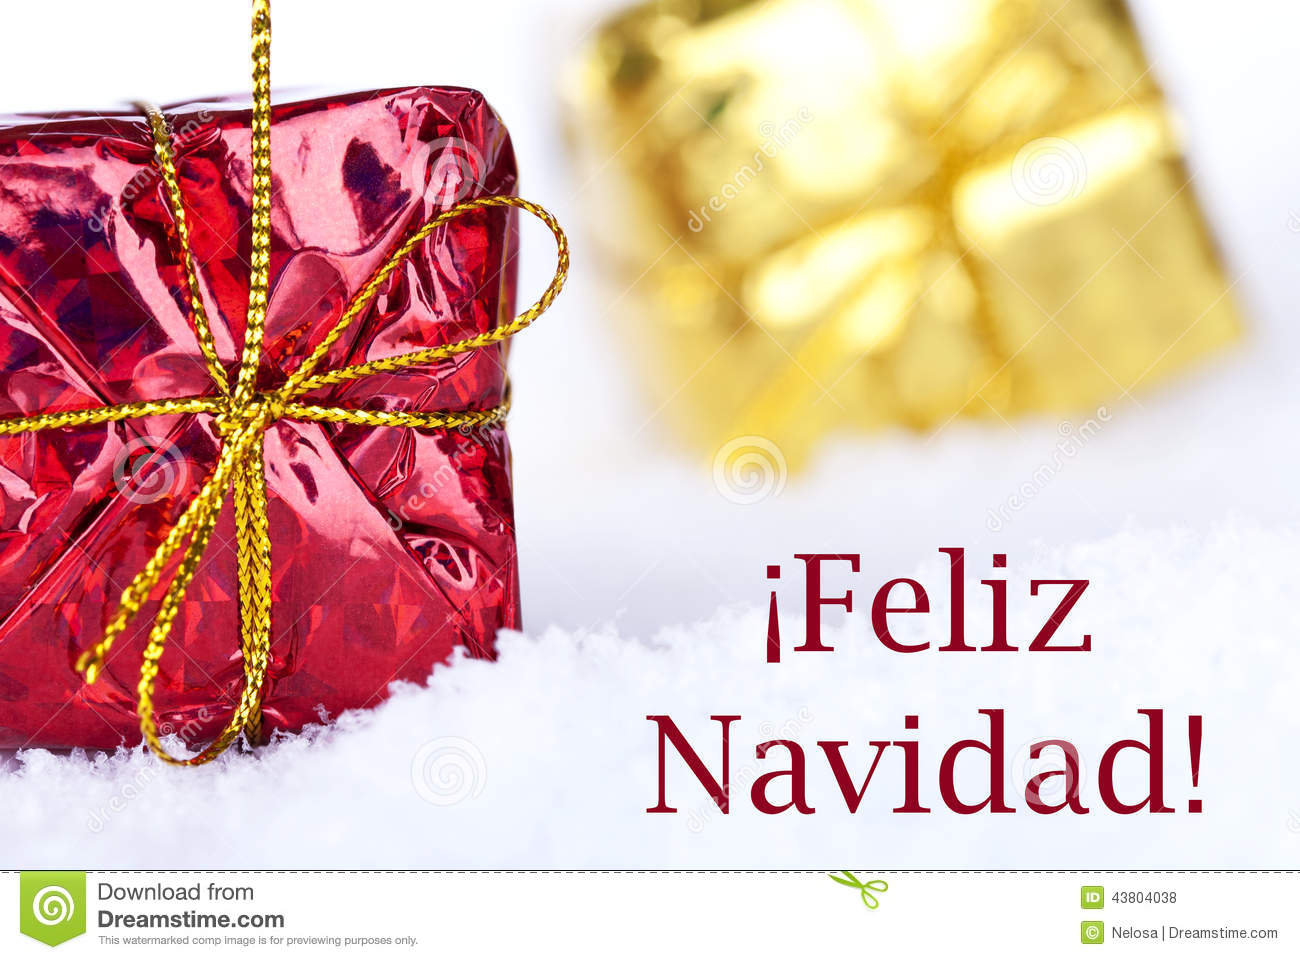 Feliz Navidad In The Snow With Gifts Stock Photo Image Of Gift